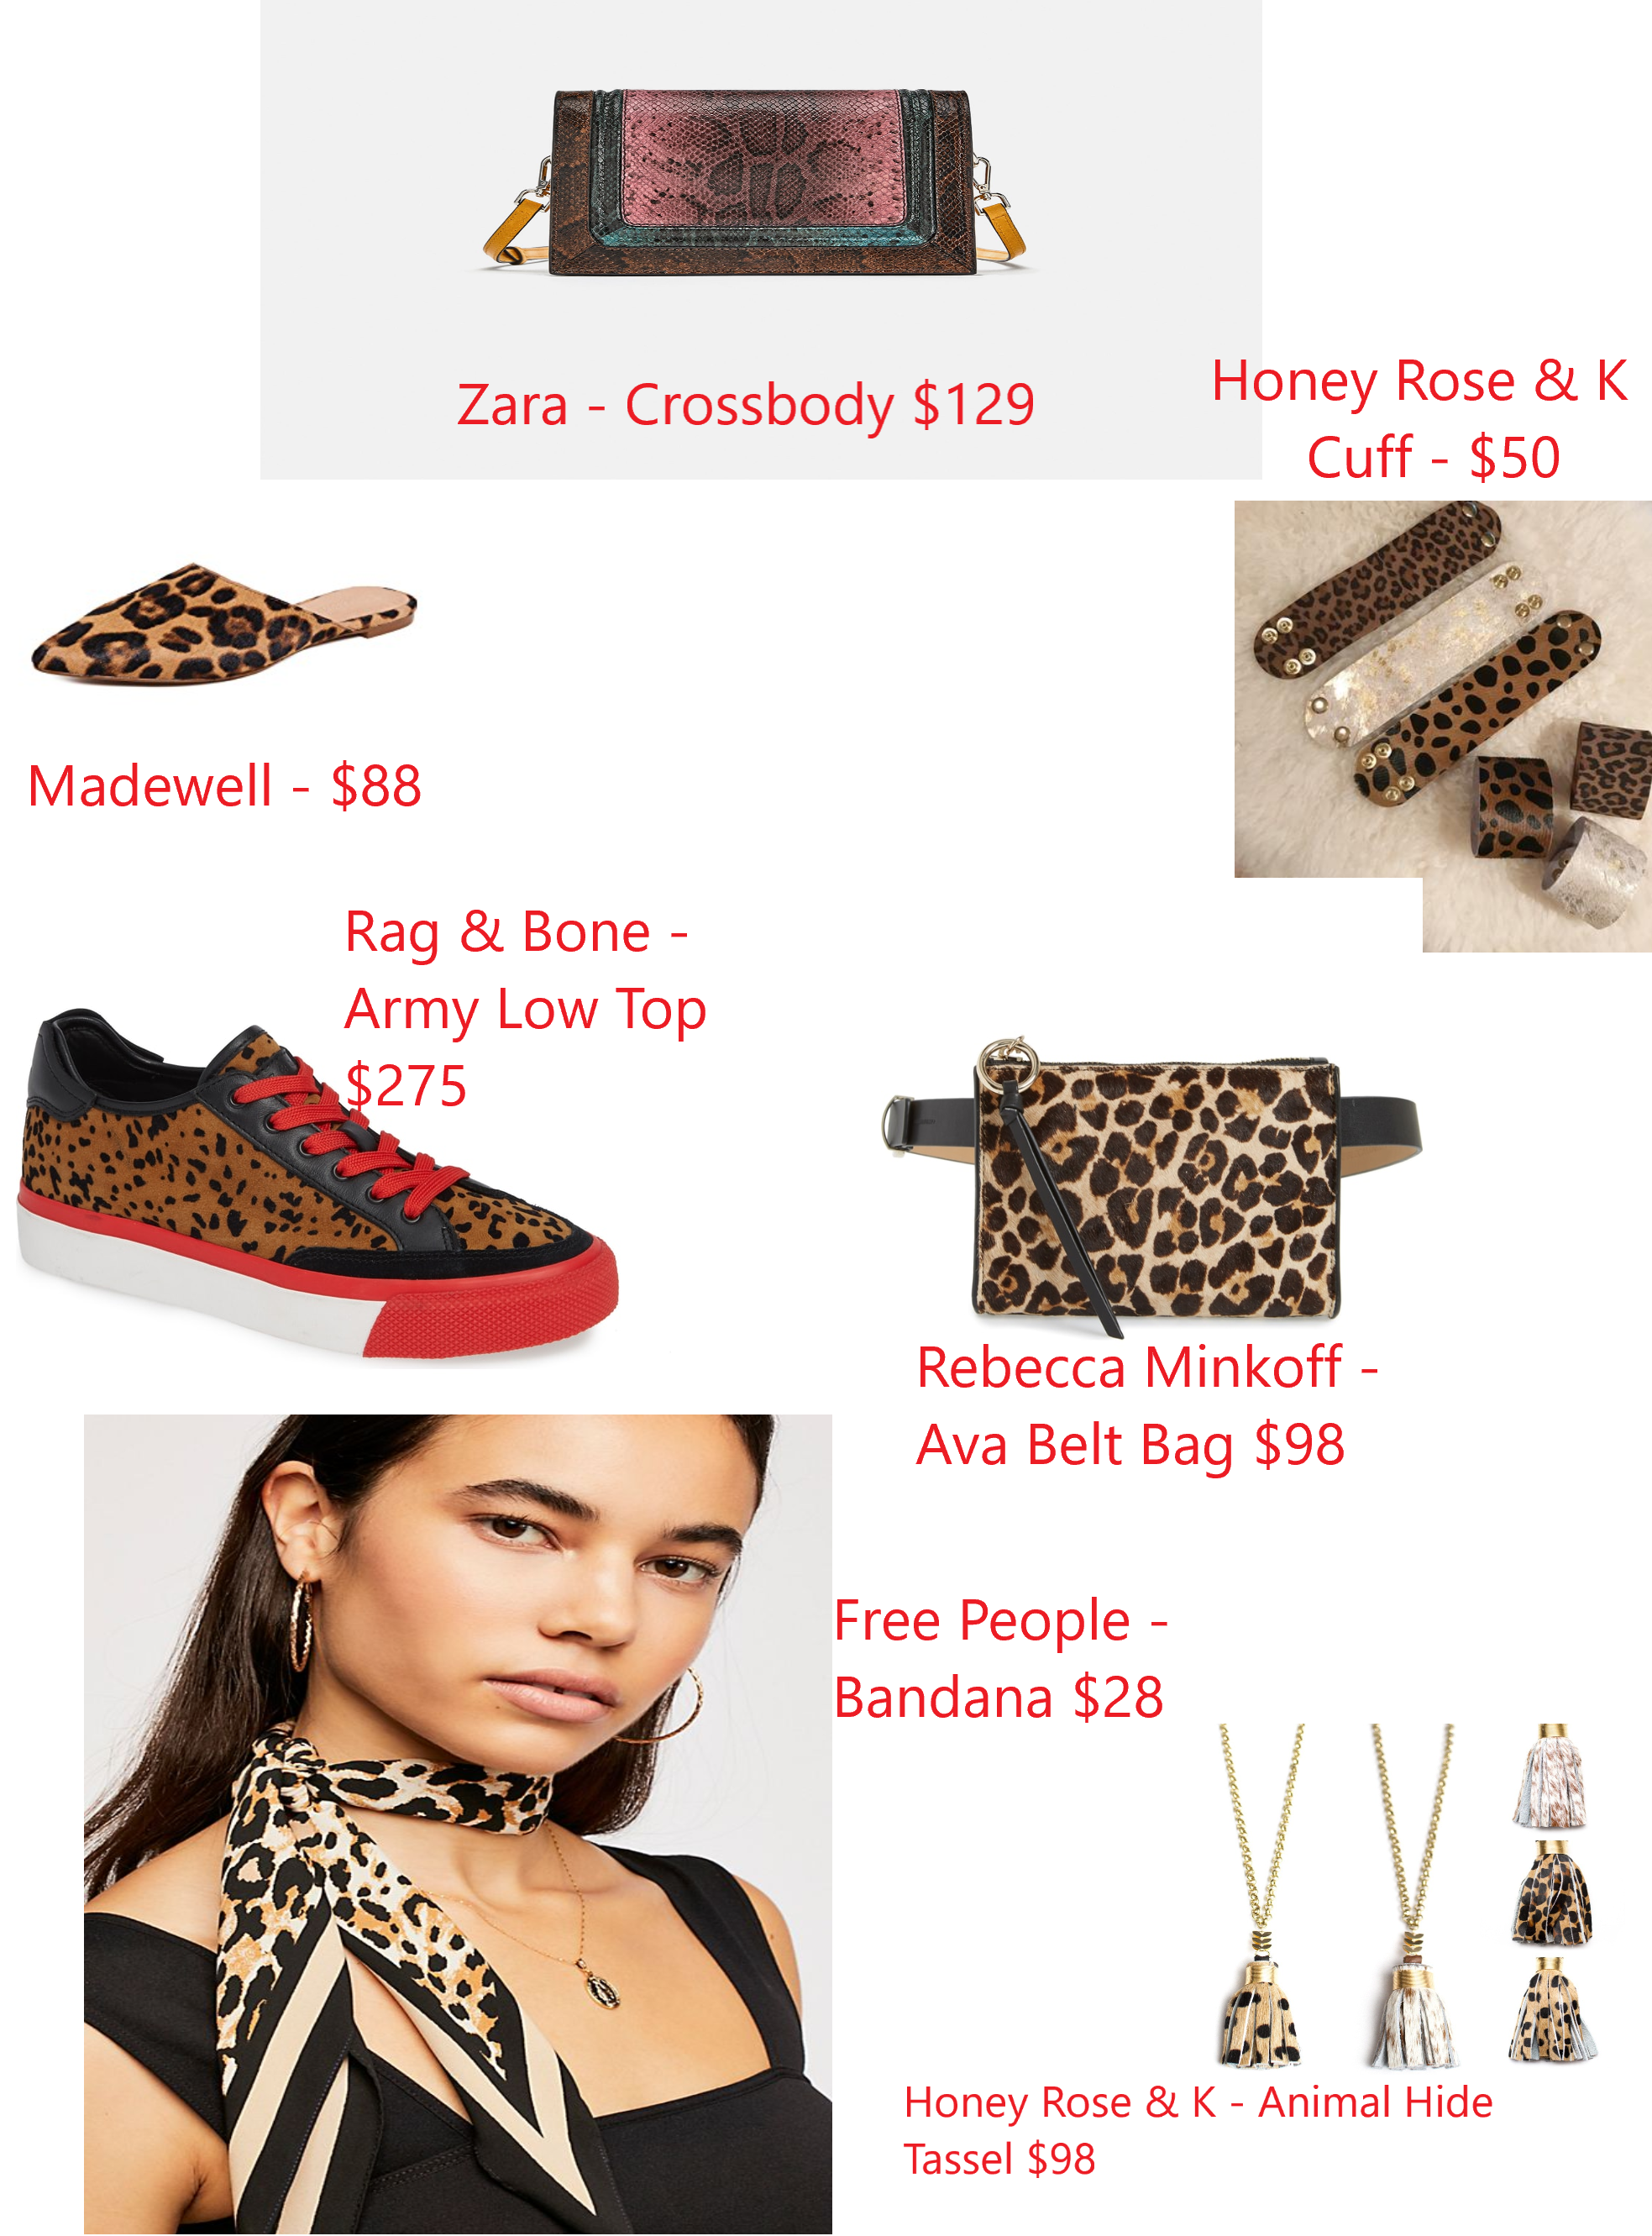 https://www.shopbop.com/iris-point-toe-mules-madewell/vp/v=1/1549217496.htm?fm=search-viewall-shopbysize&os=false    https://honeyrosenk.com/products/animal-print-bracelets    https://shop.nordstrom.com/s/rag-bone-army-low-top-sneaker-women/5027960?origin=keywordsearch-personalizedsort&color=tan%20cheetah%20suede    https://shop.nordstrom.com/s/rebecca-minkoff-ava-genuine-calf-hair-belt-bag/4986046?origin=keywordsearch-personalizedsort&color=haircalf%20cheetah%20%2F%20pol%20gold    https://www.freepeople.com/shop/perfect-pair-oblong-bandana/?category=Accessories%20%3E%20Scarves%20%3E%20Bandanas&color=020    https://honeyrosenk.com/products/animal-print-hyde-tassel-necklaces